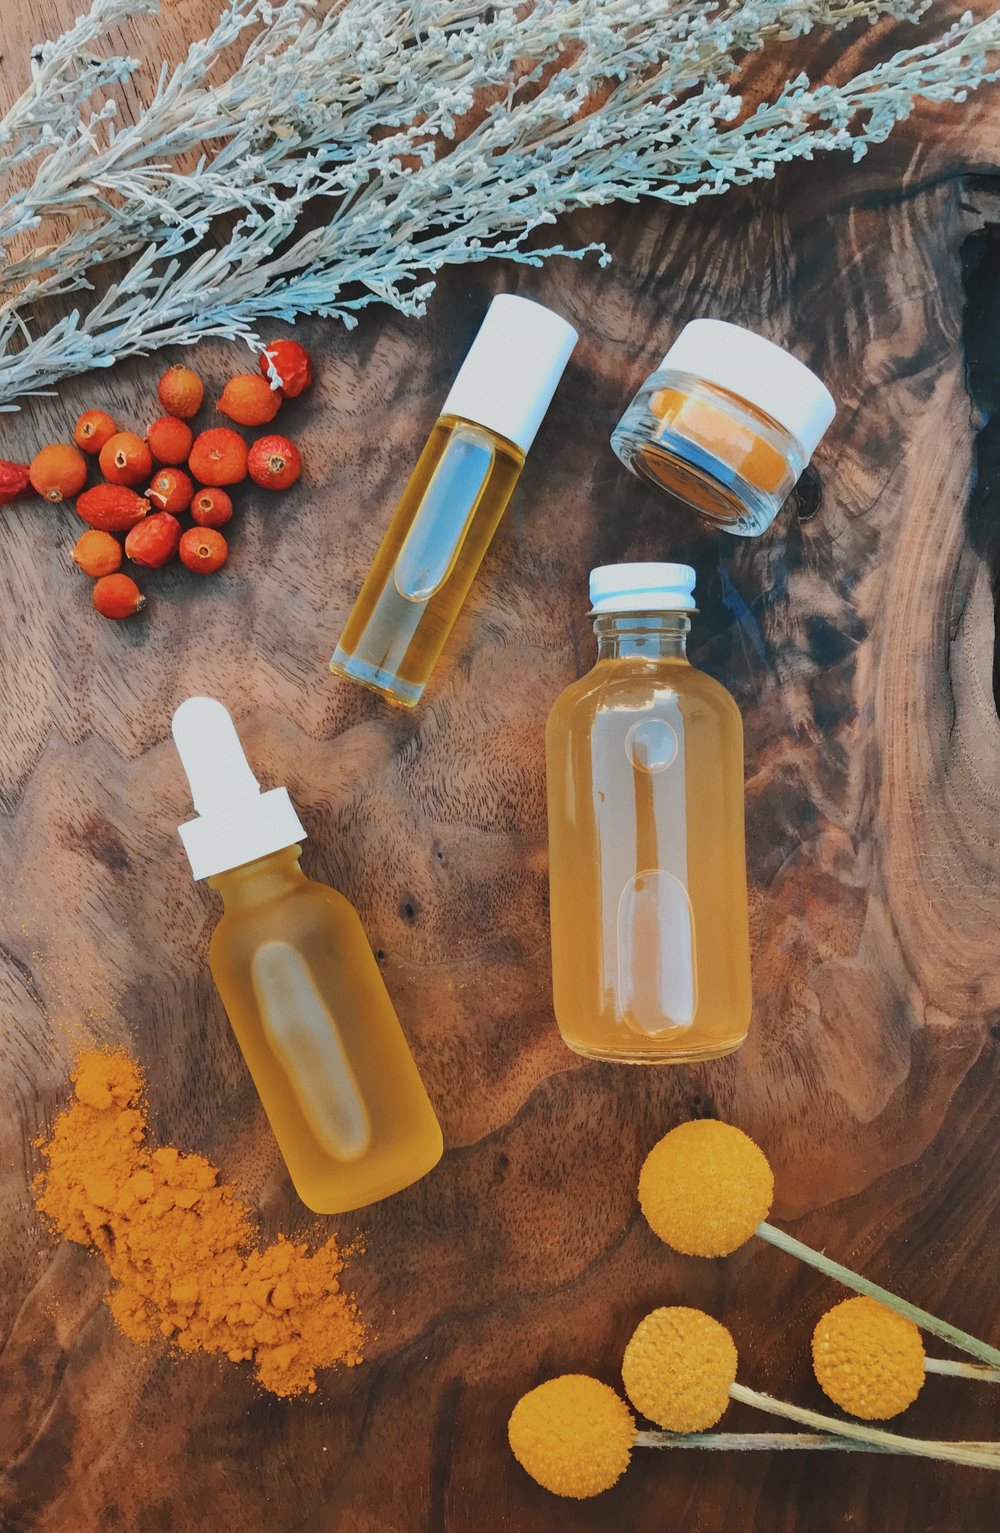 The Medicine Cabinet: Remedies for Autumn -